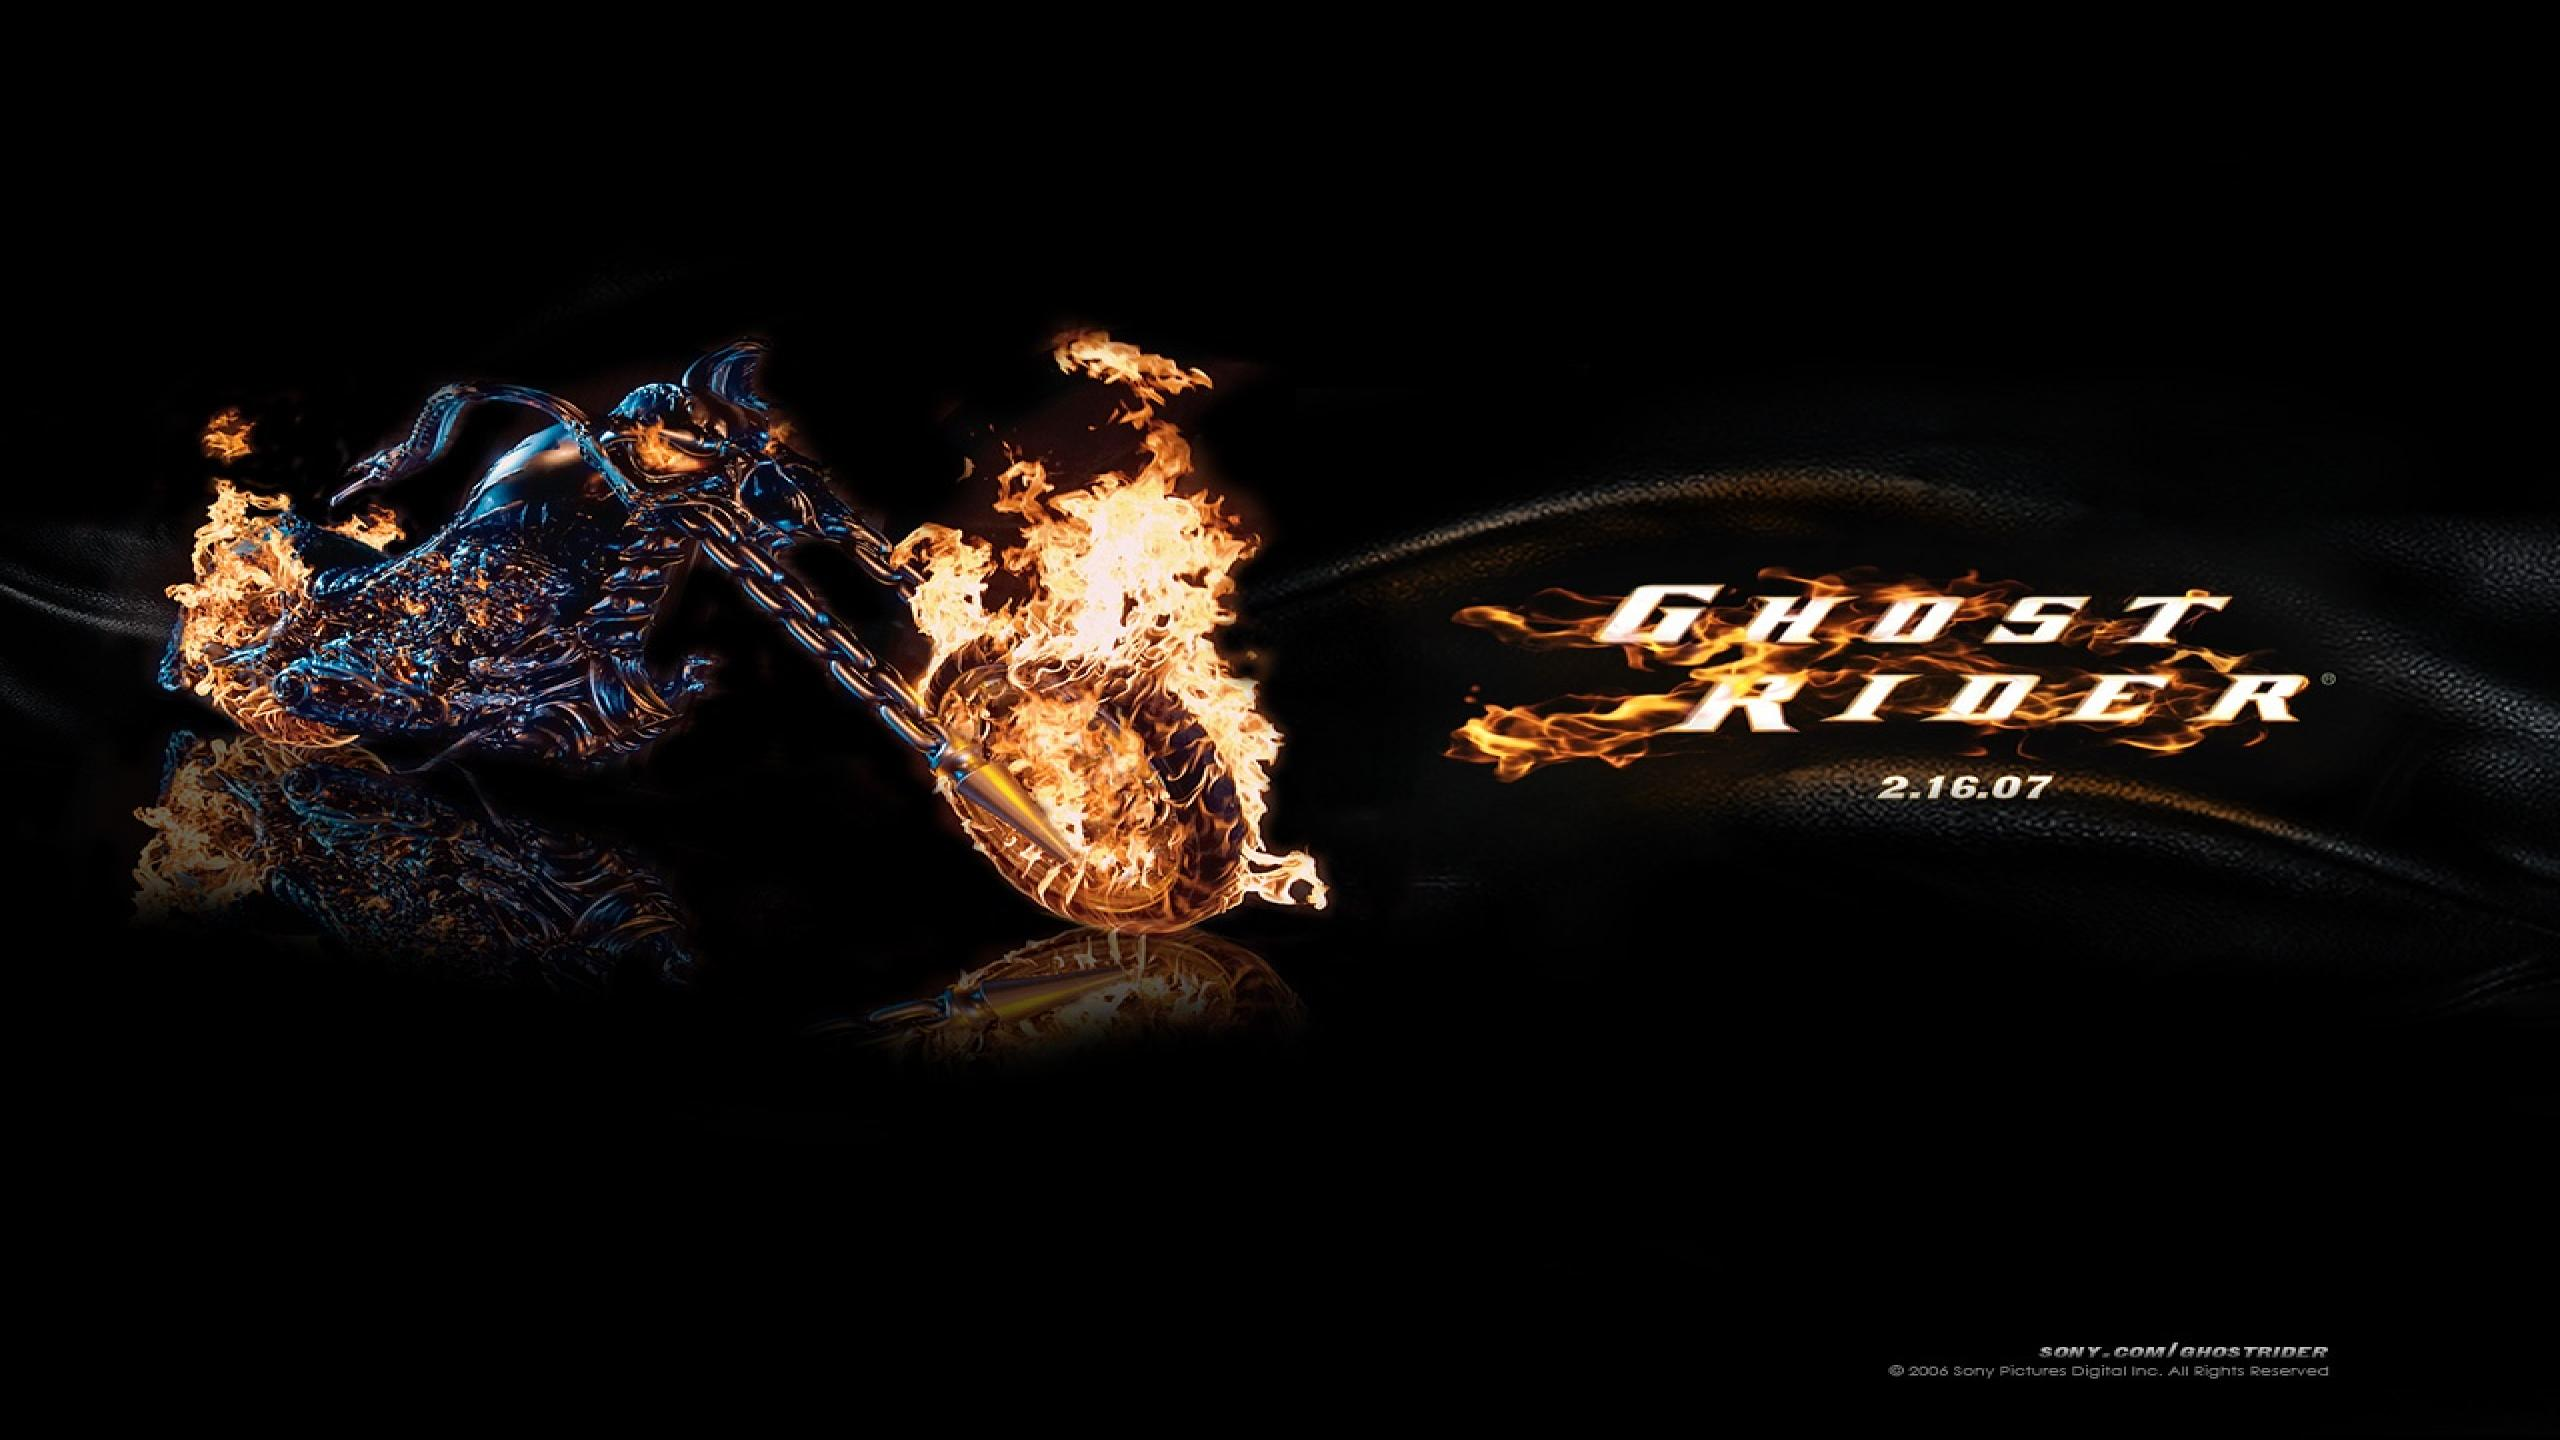 2560x1440px ghost rider desktop wallpaper - wallpapersafari